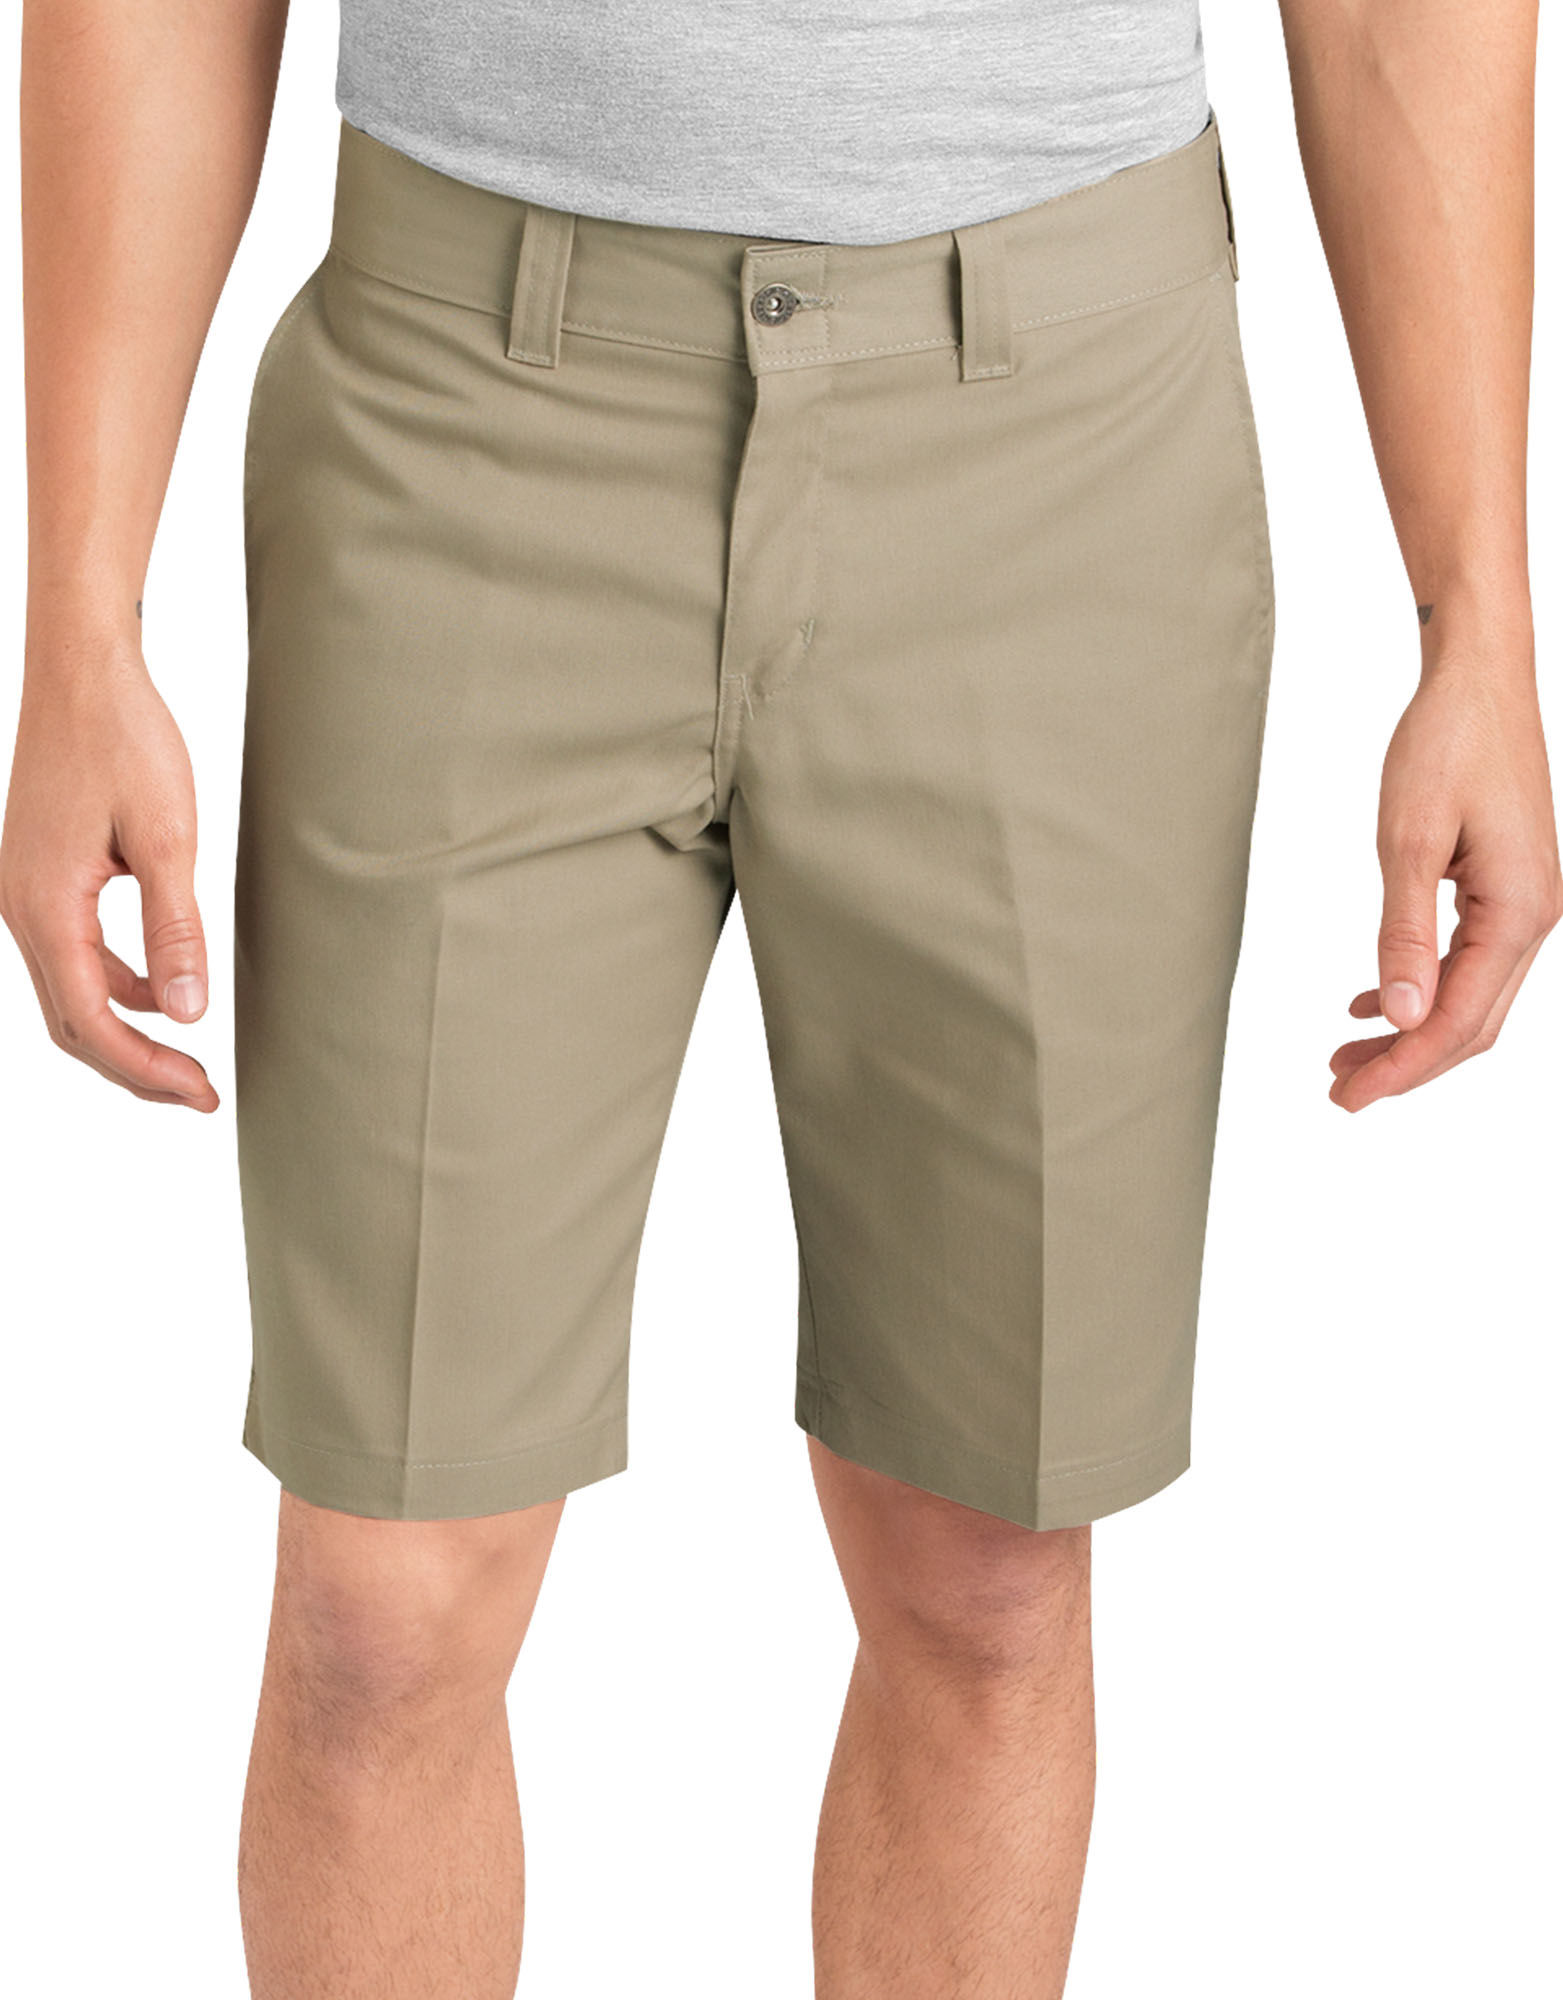 Dickies 67 Slim fit flex Shortsit Musta tai Beige